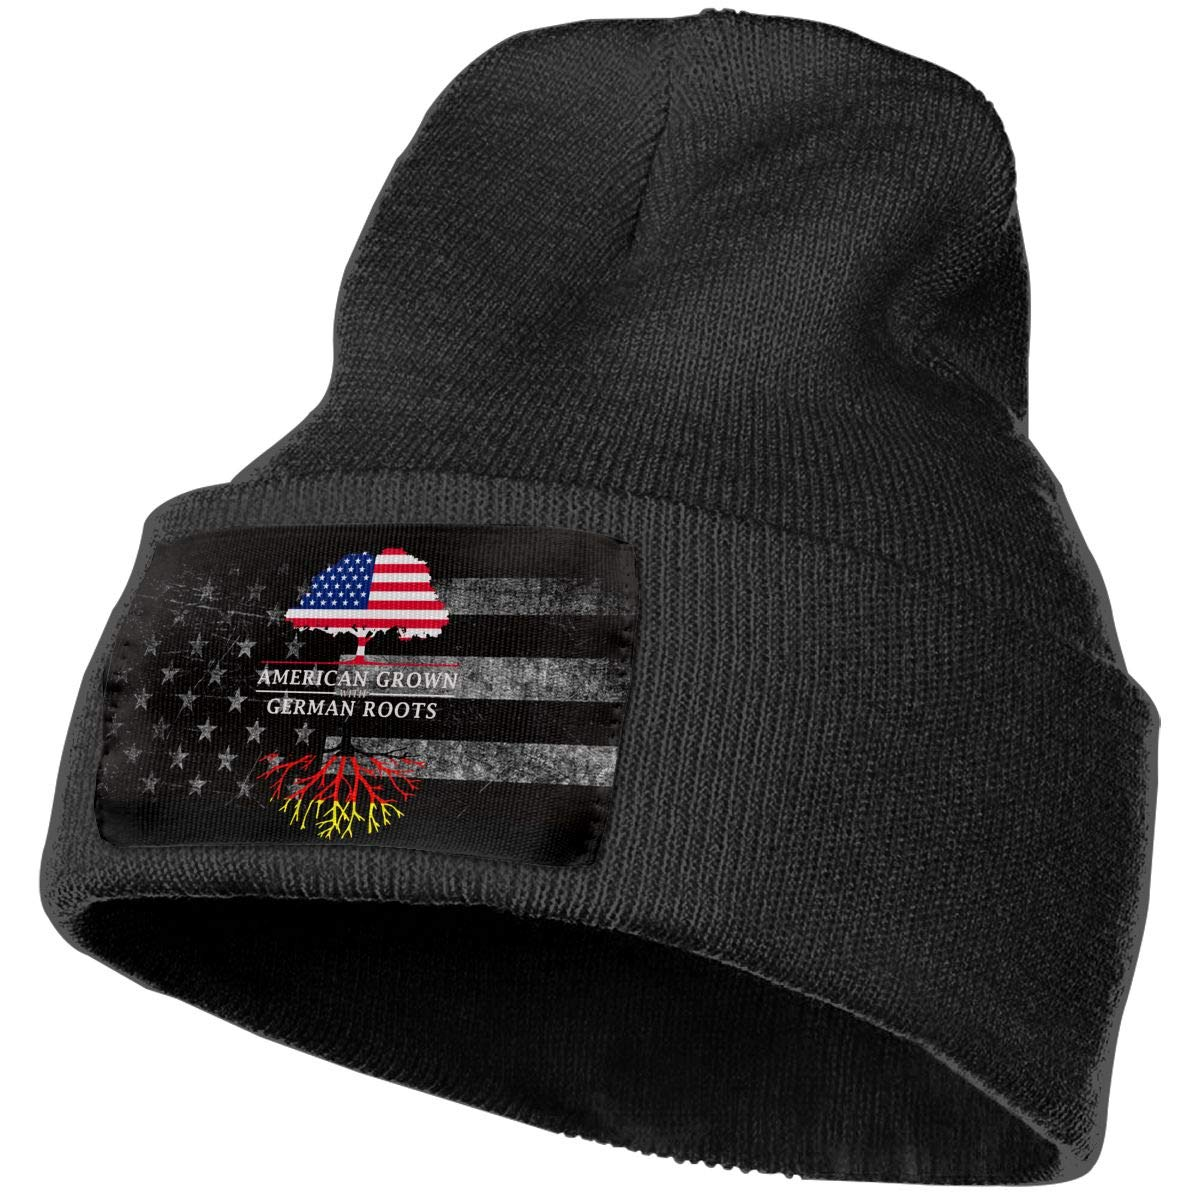 FORDSAN CP American Grown with German Roots Mens Beanie Cap Skull Cap Winter Warm Knitting Hats.